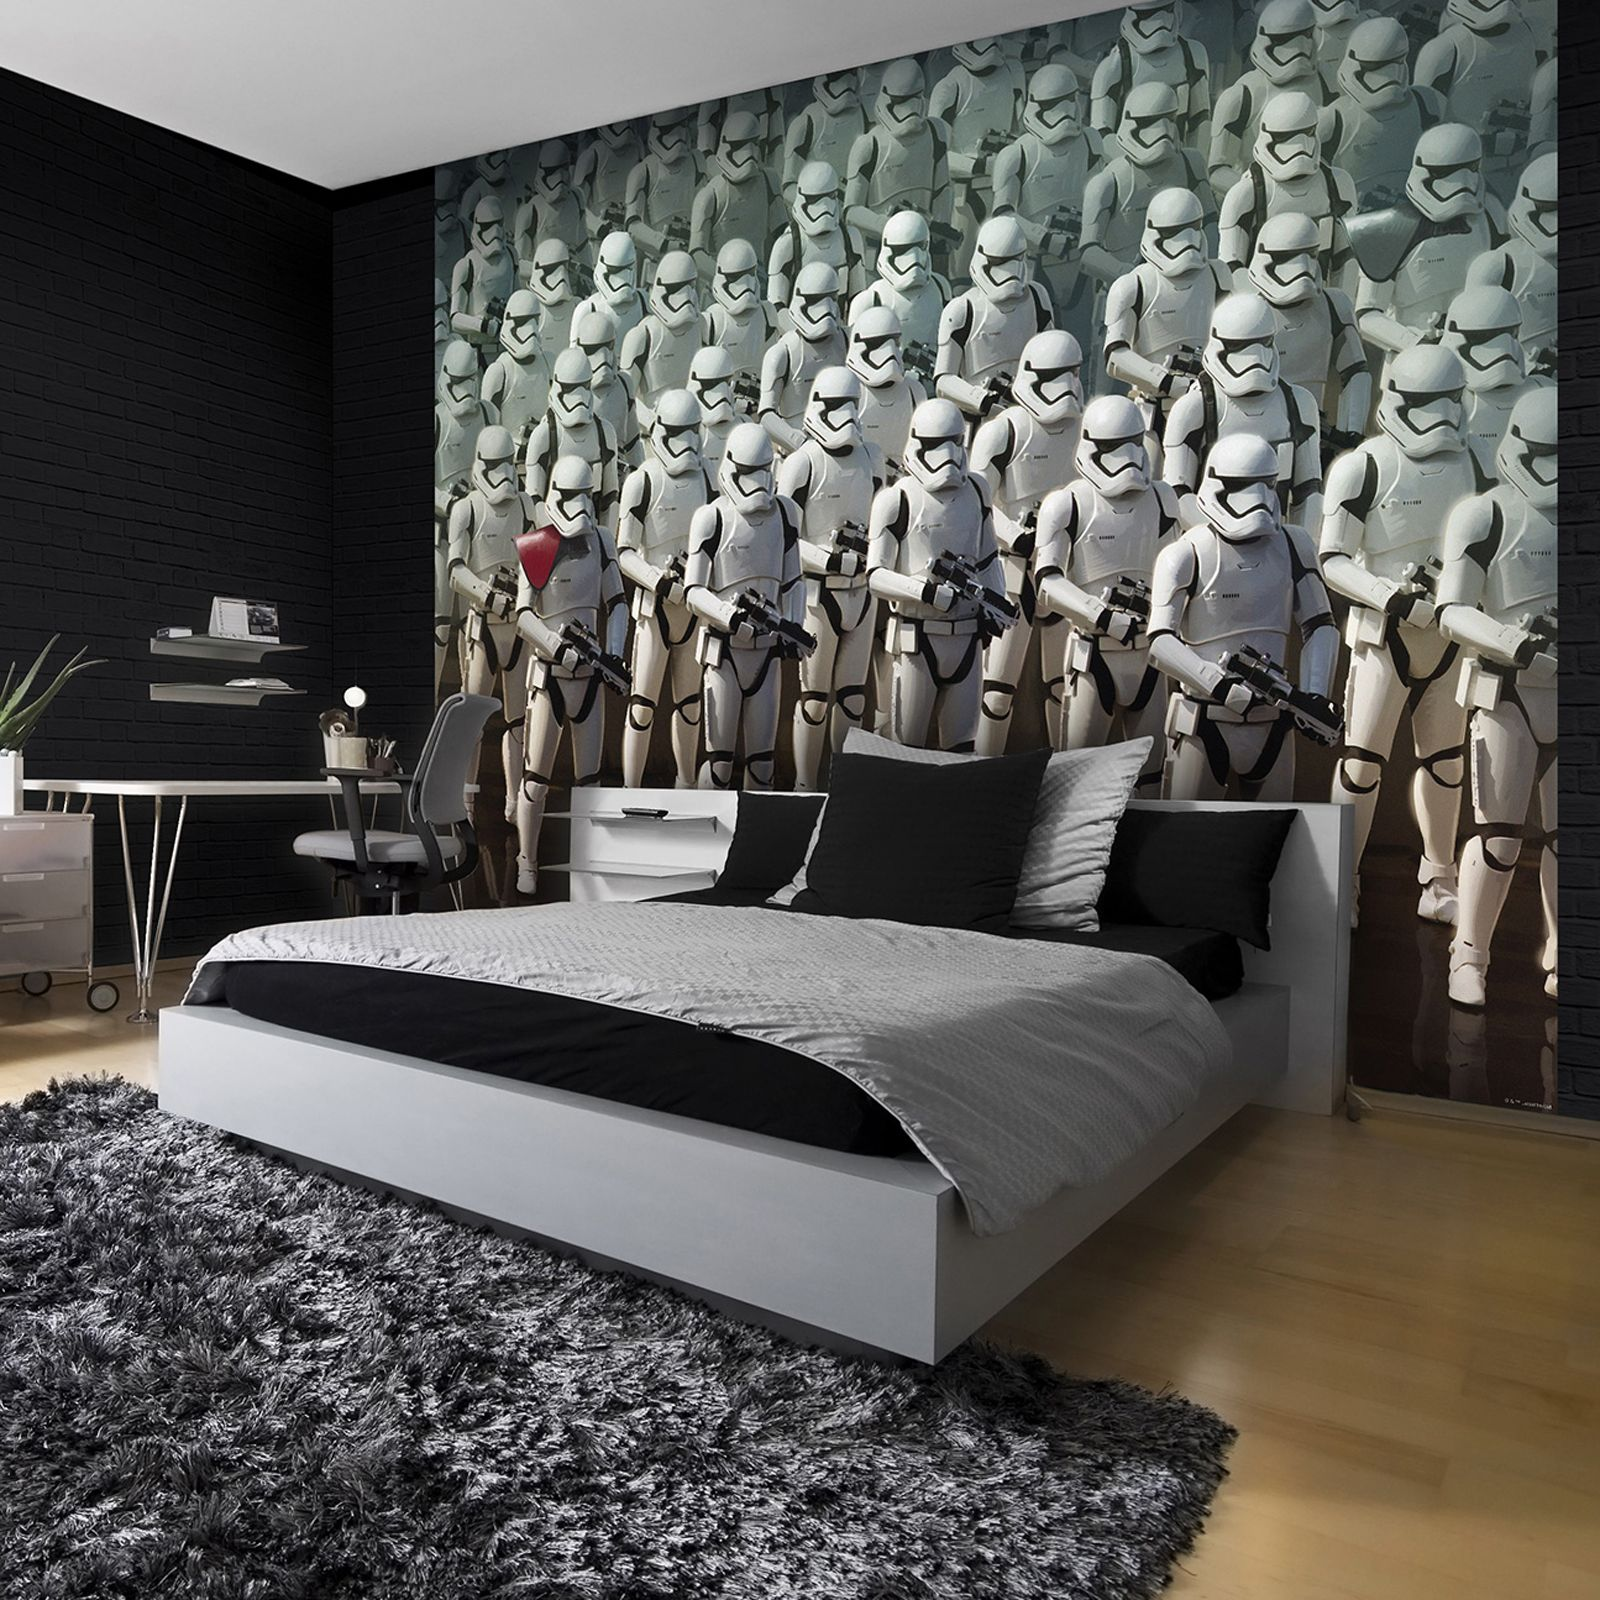 Star wars stormtrooper wall mural 254 x 184cm ebay for Death star wall mural